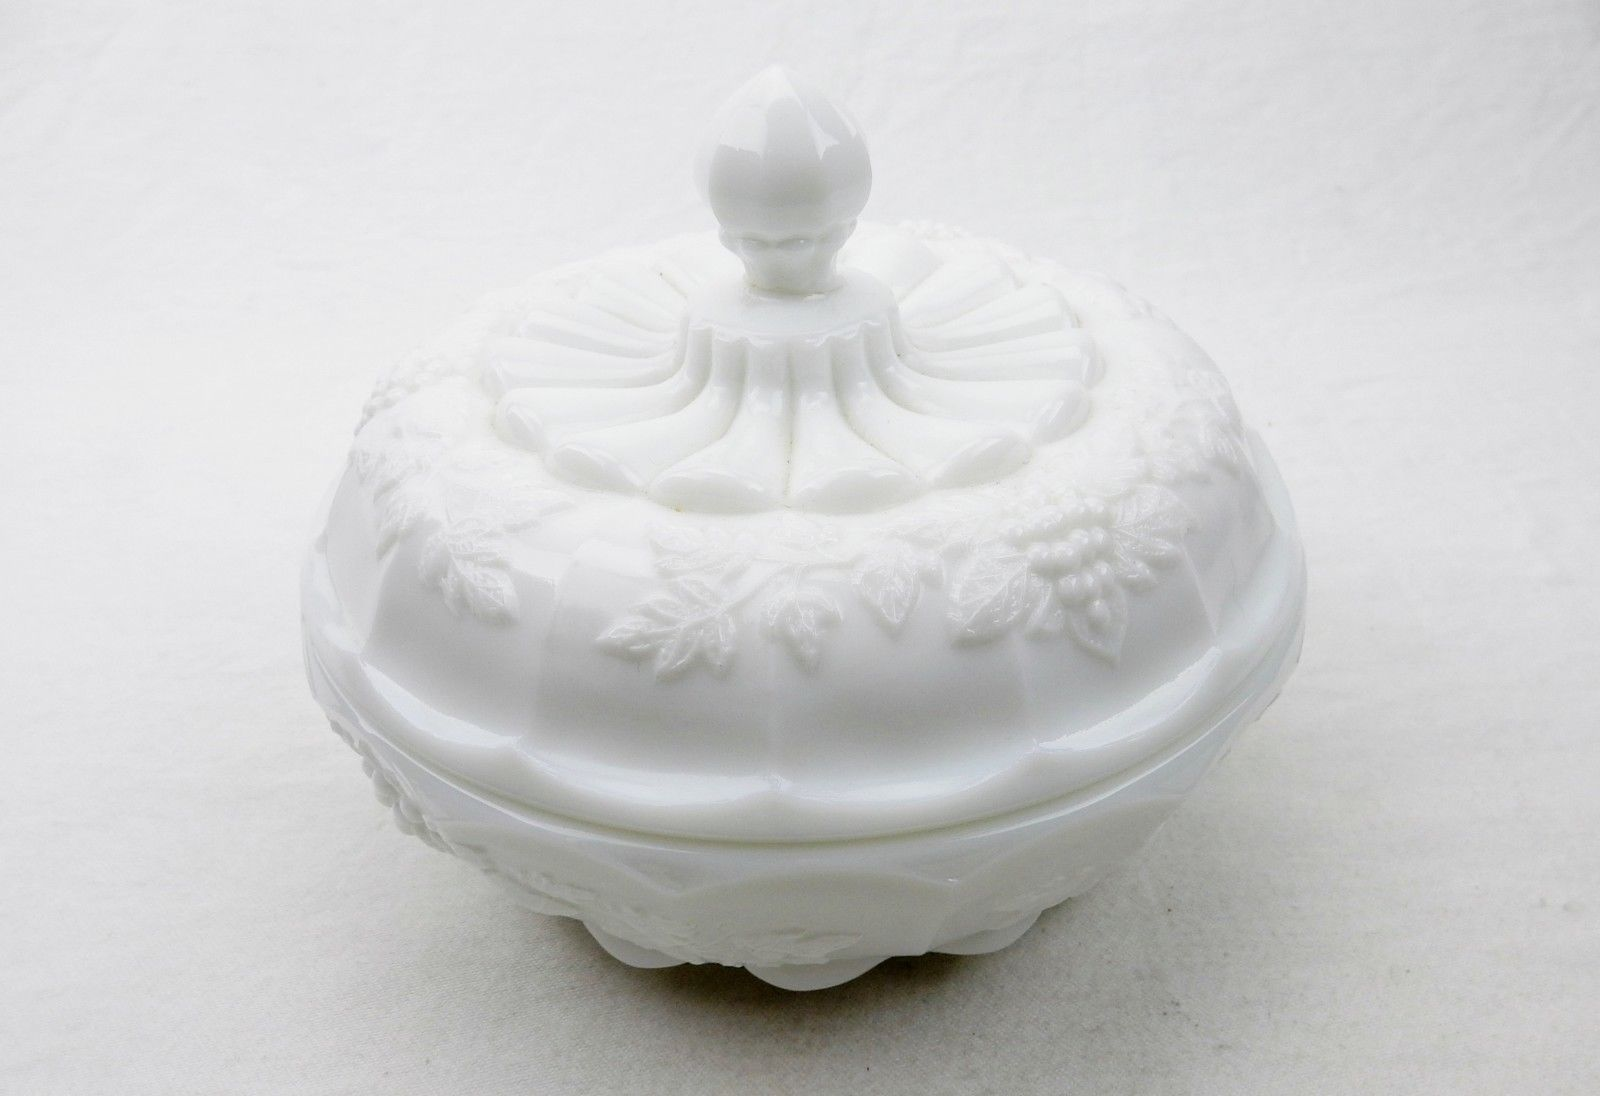 Primary image for Vintage Westmoreland Covered Candy Dish~Grape & Leaf Design Milk Glass, 1950s